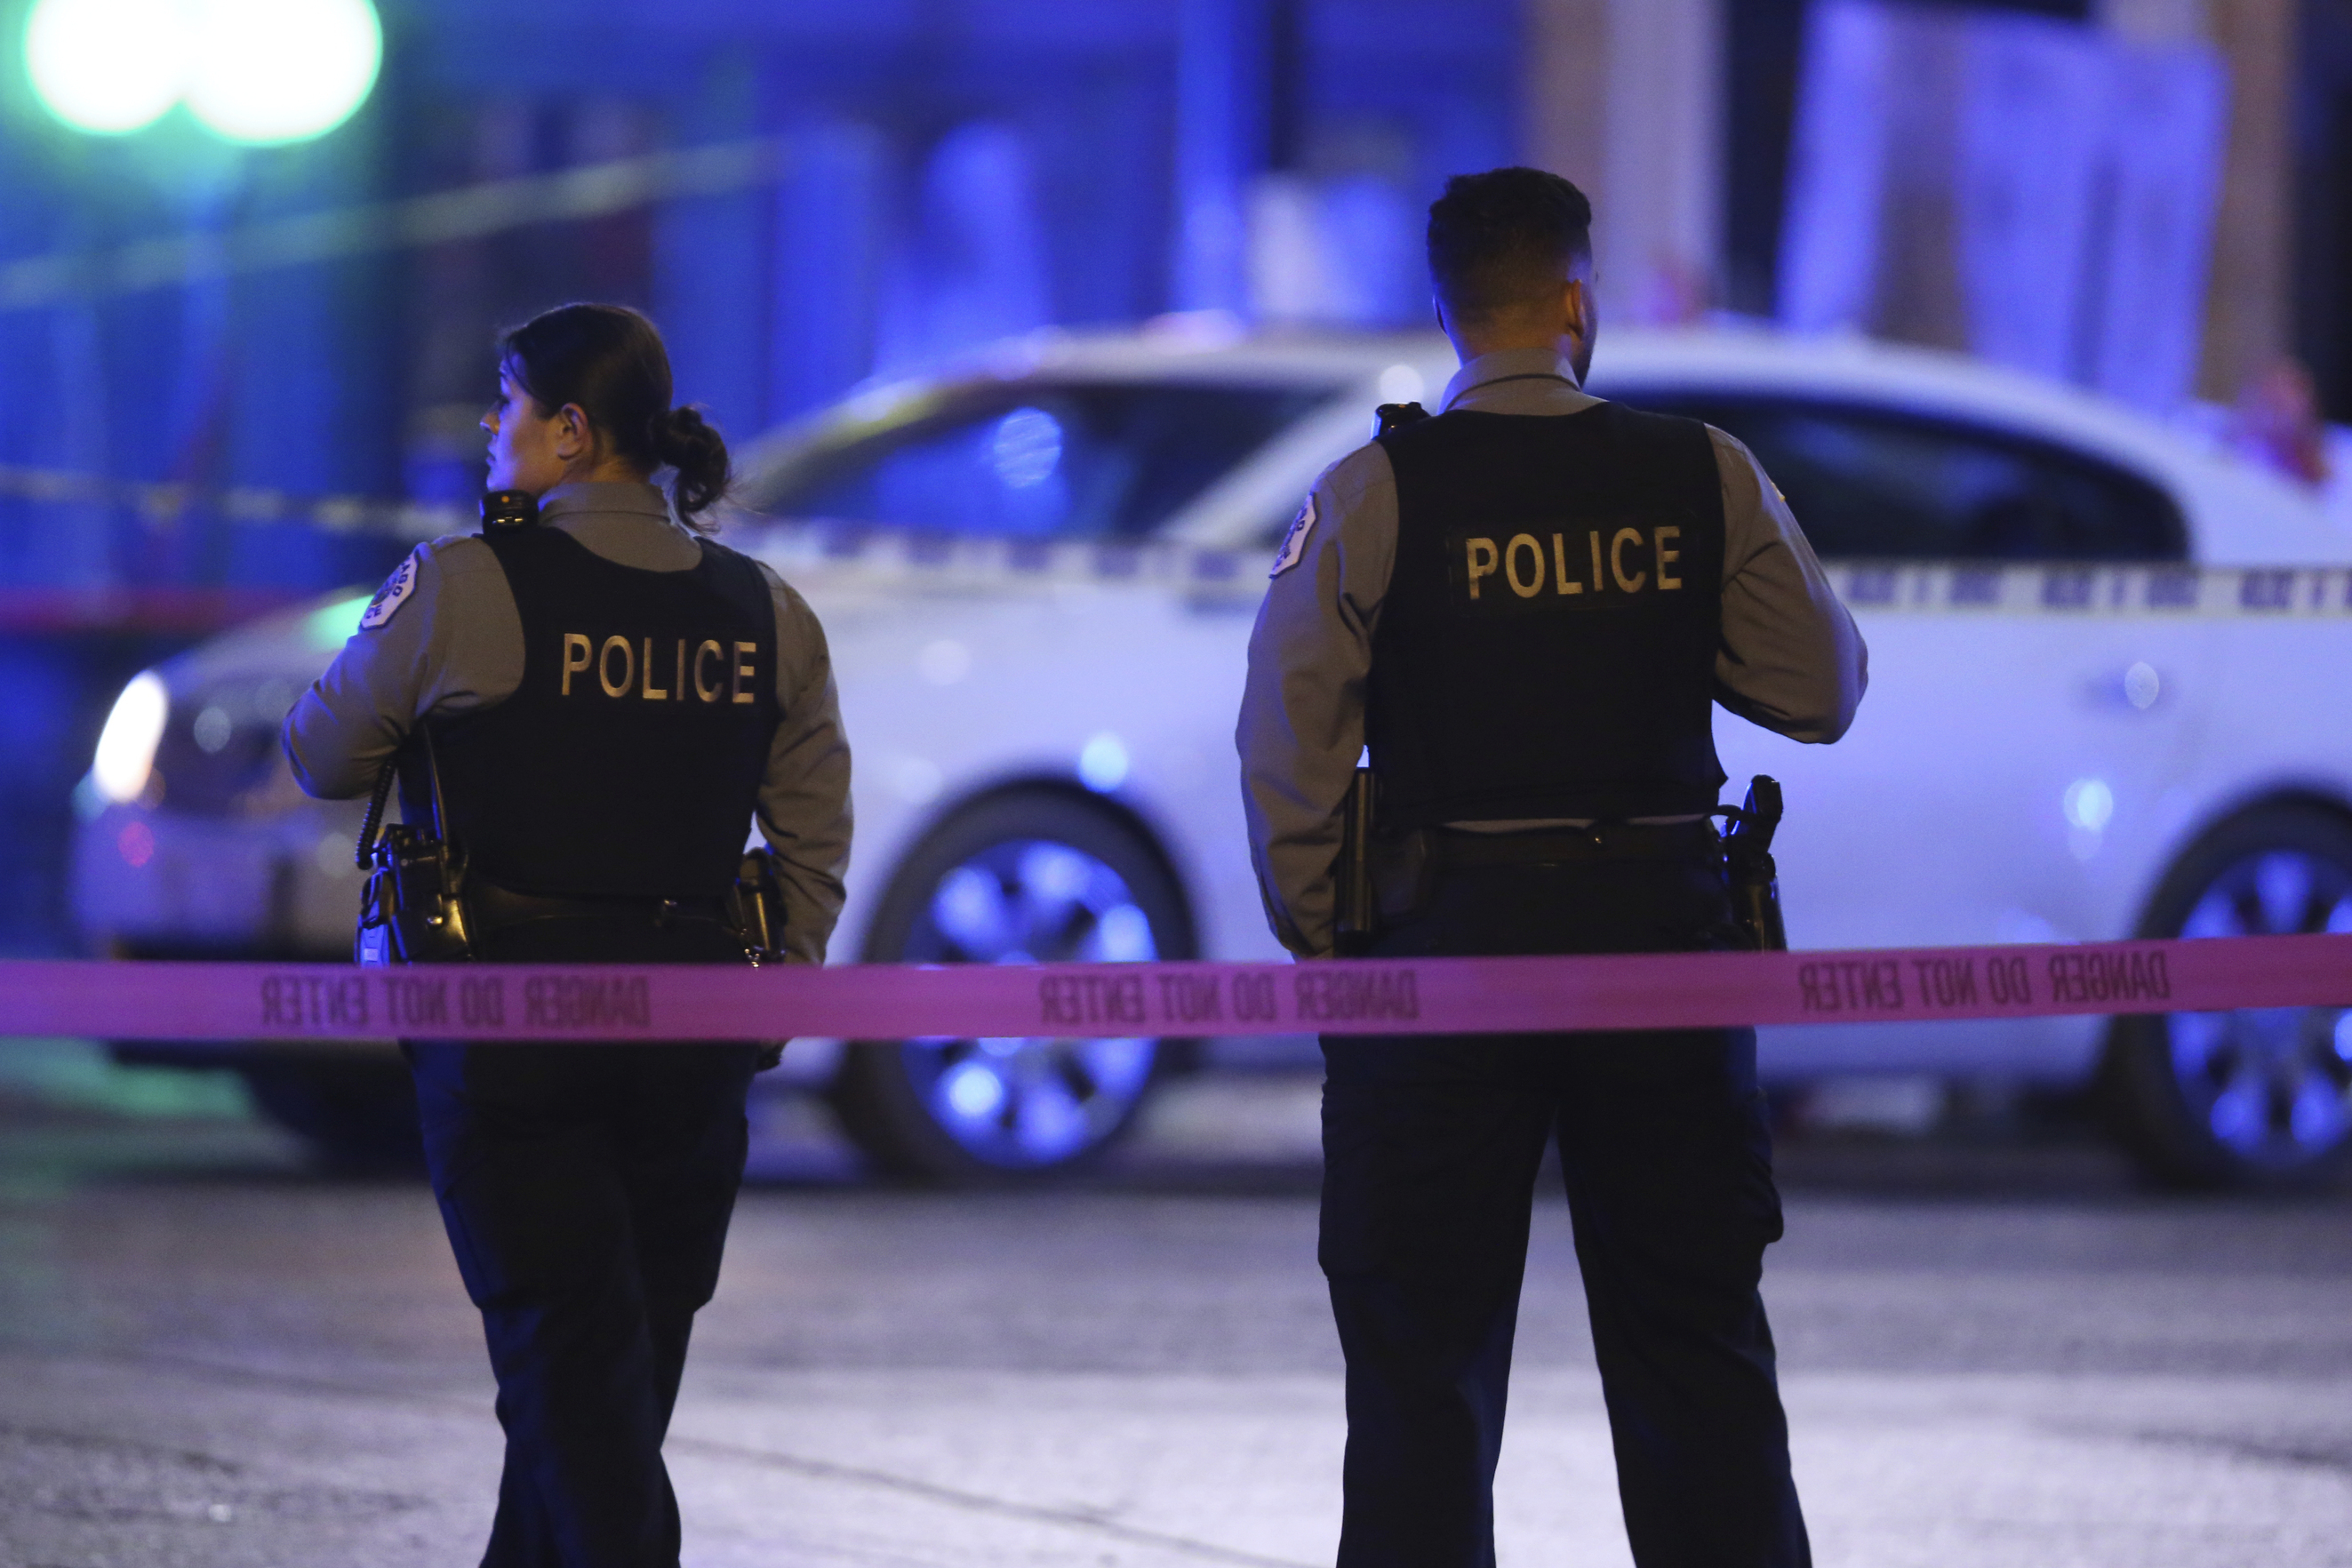 Police work a crime scene  in Chicago on Nov. 19, 2019. Despite a statewide shelter-in-place order in an attempt to stop the spread of the coronavirus, the city is still facing high levels of gun violence.